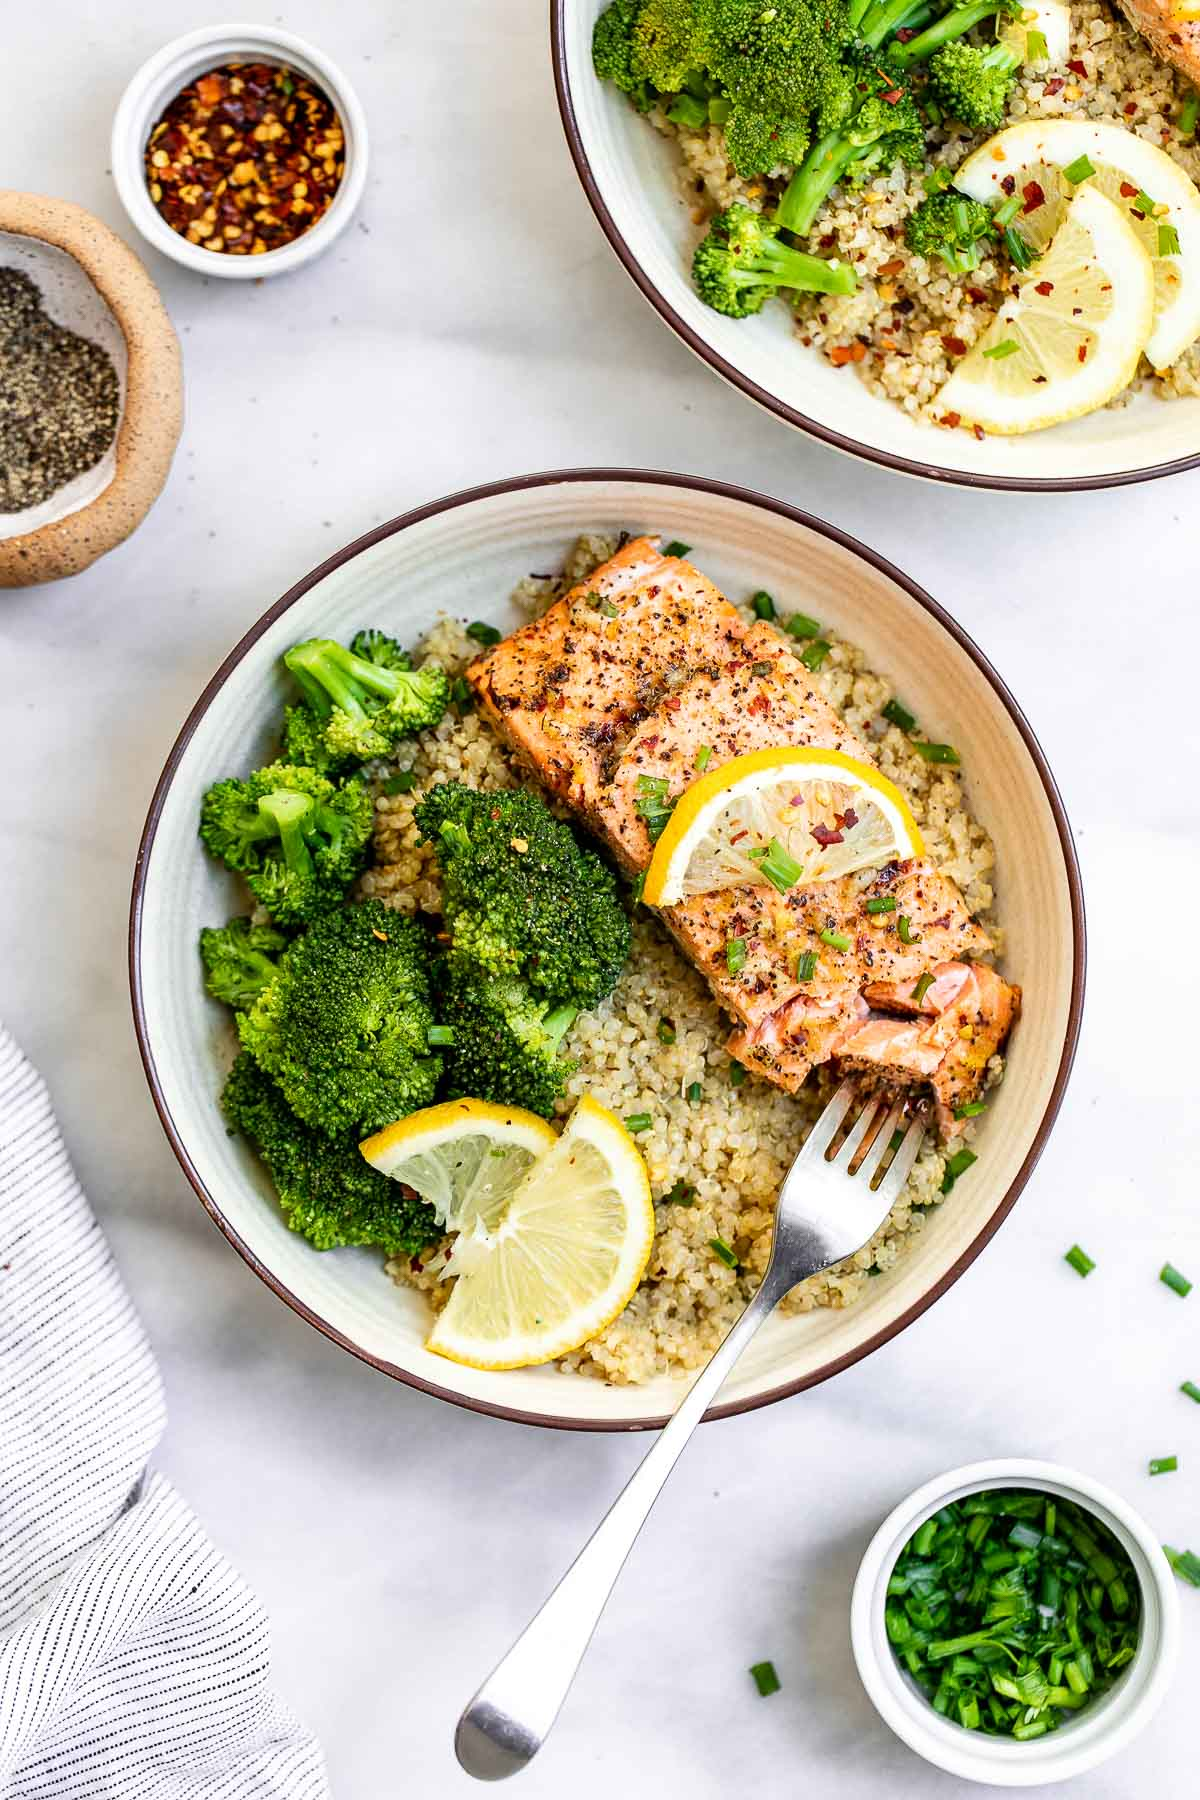 Lemon pepper salmon in a bowl with quinoa, broccoli and lemon wedges.